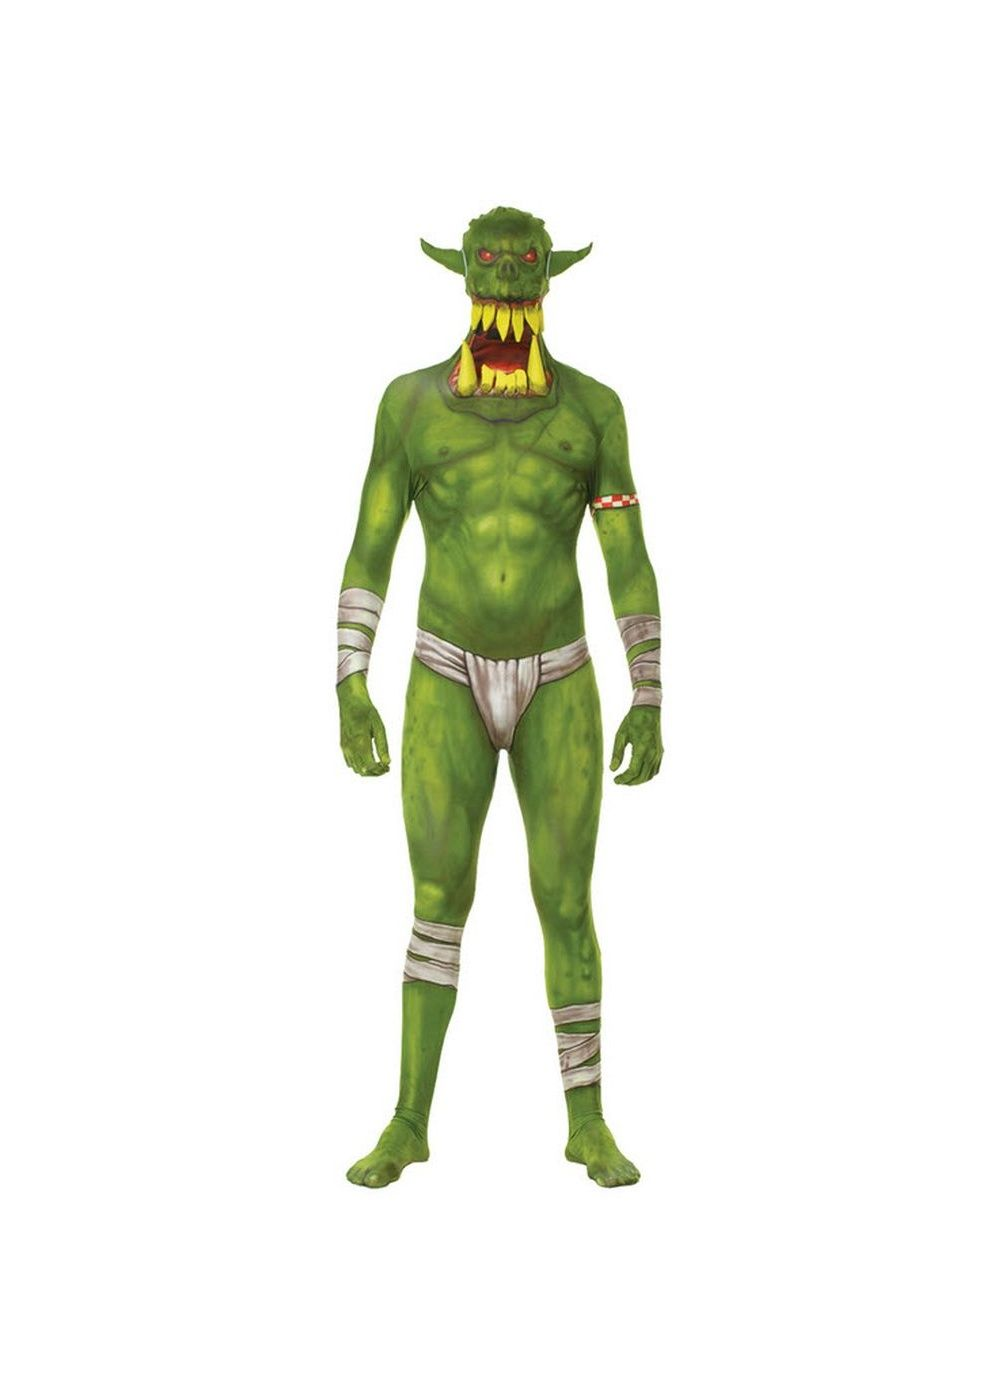 Green orc jaw dropper men costume 2015 men costumes pinterest green orc jaw dropper men costume solutioingenieria Choice Image